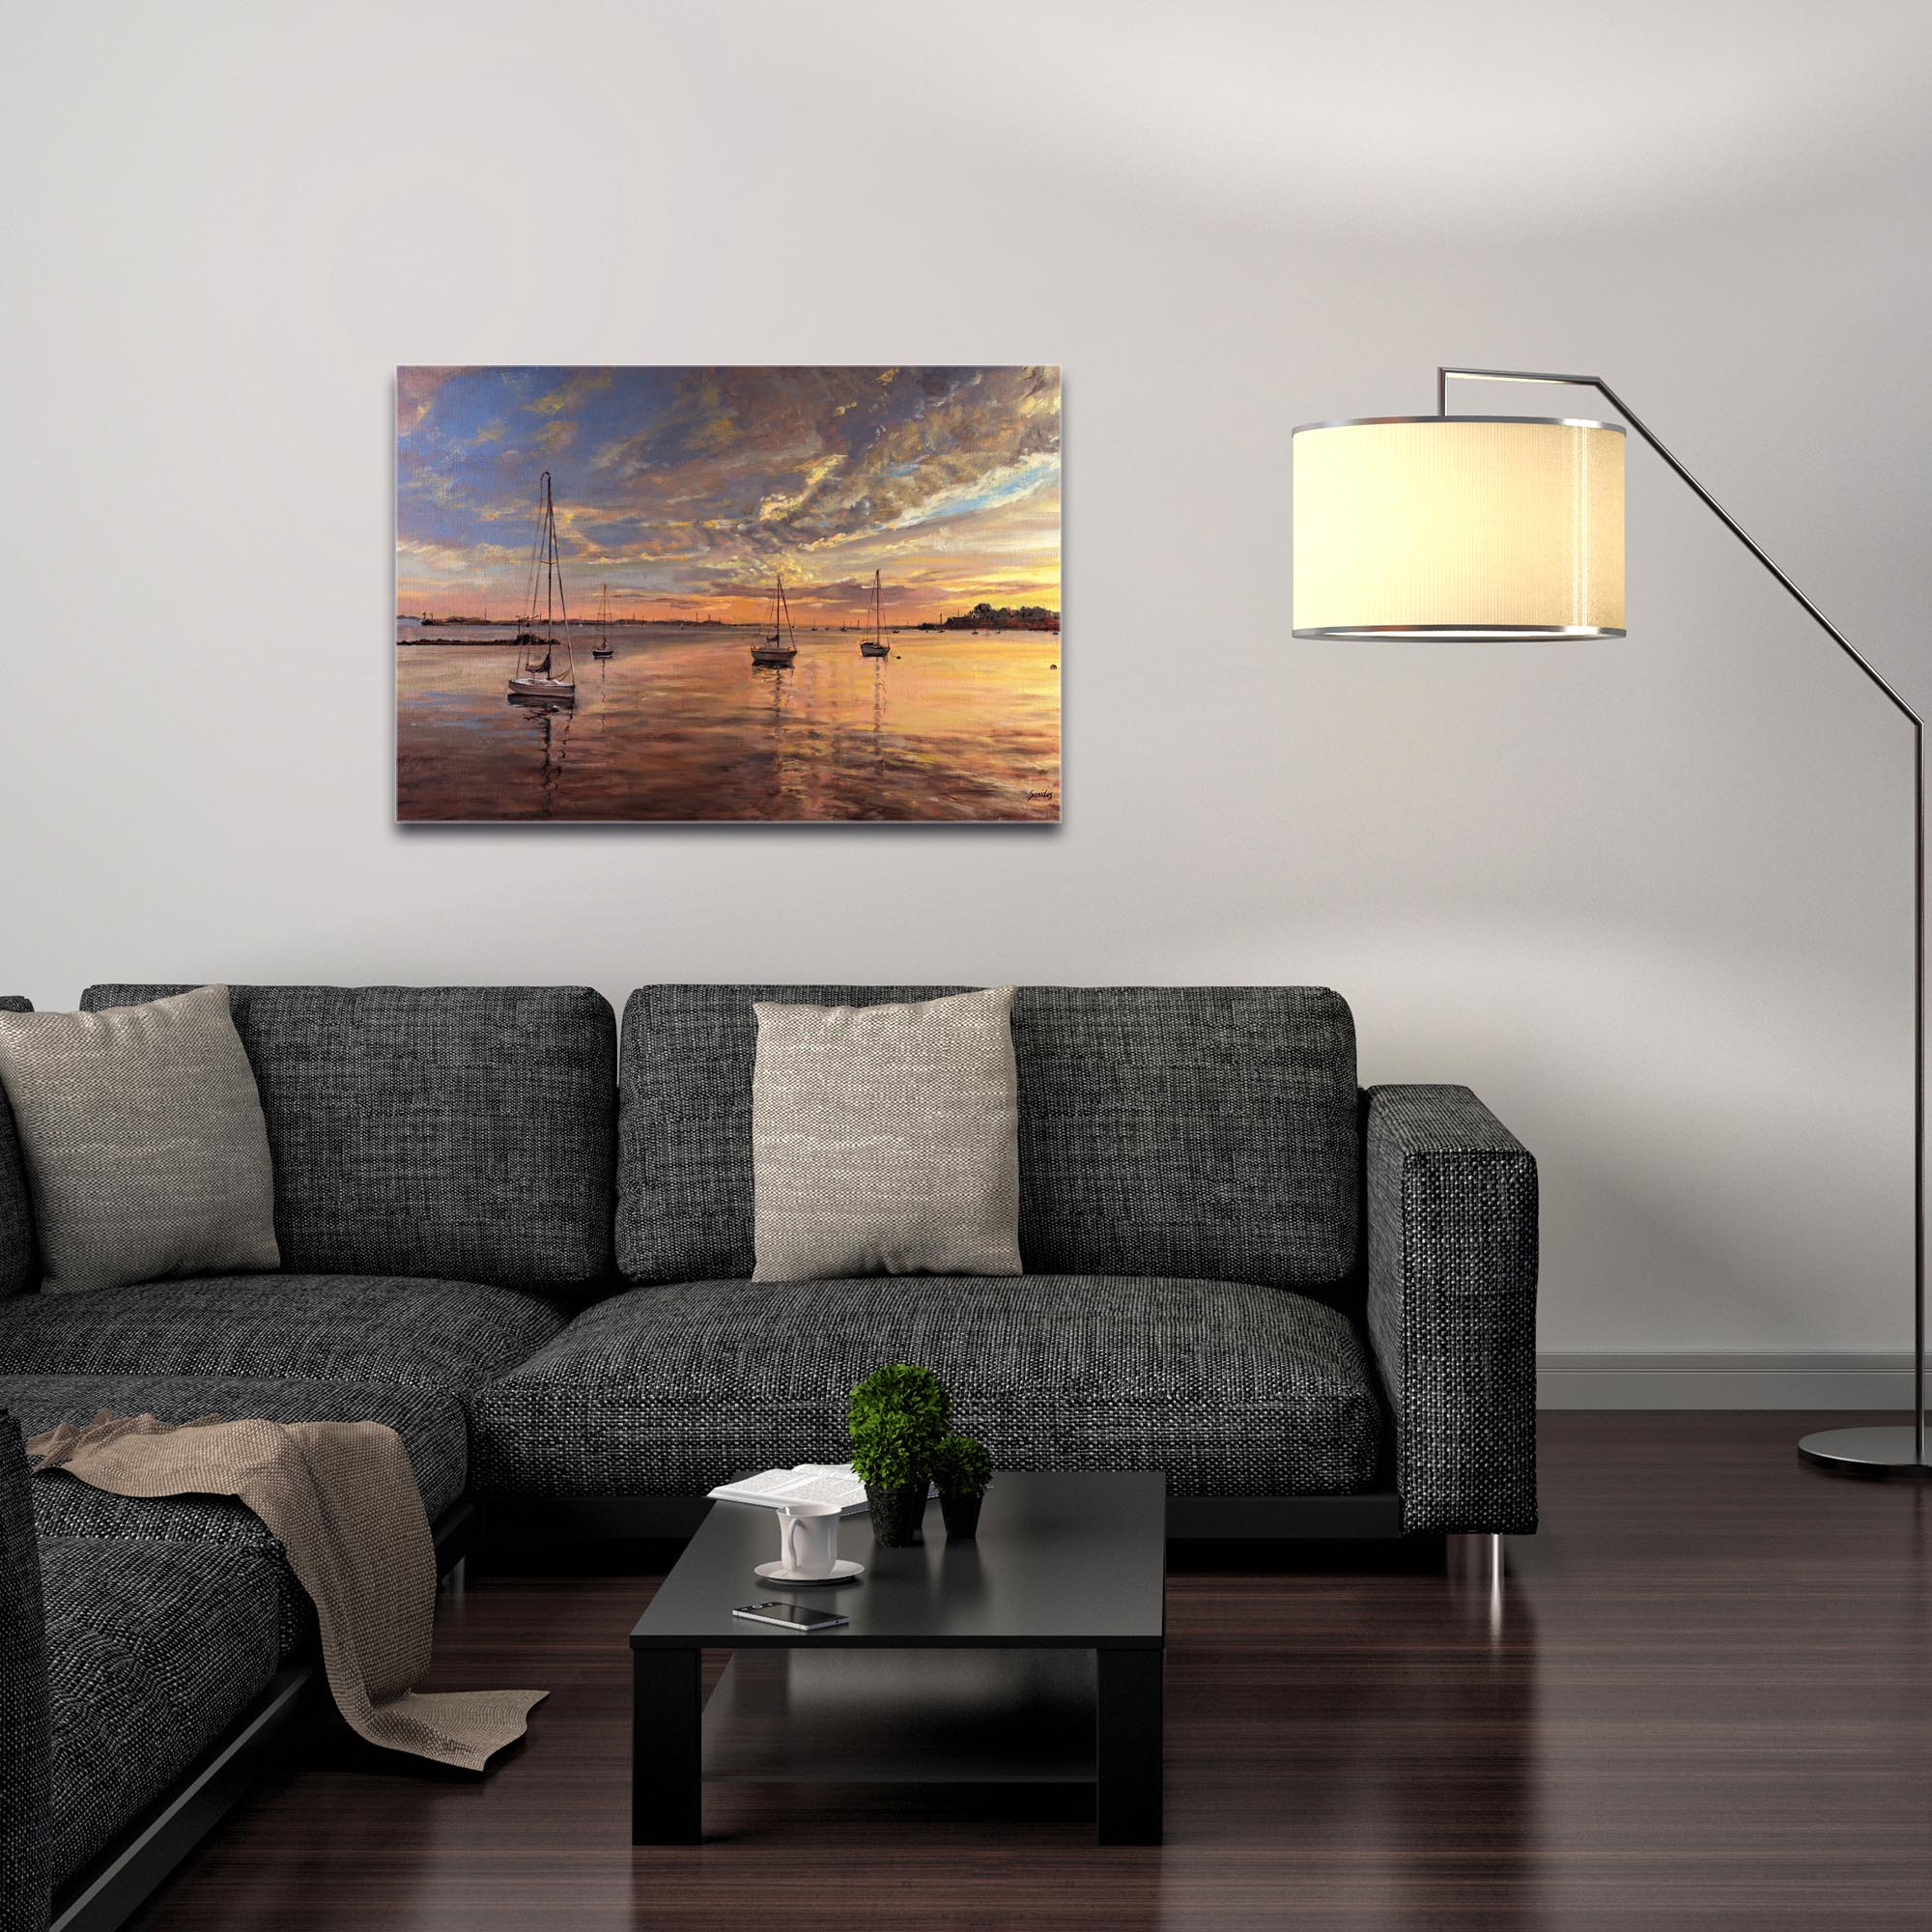 Coastal Wall Art 'Harbor 2' - Boats Decor on Metal or Plexiglass - Image 3